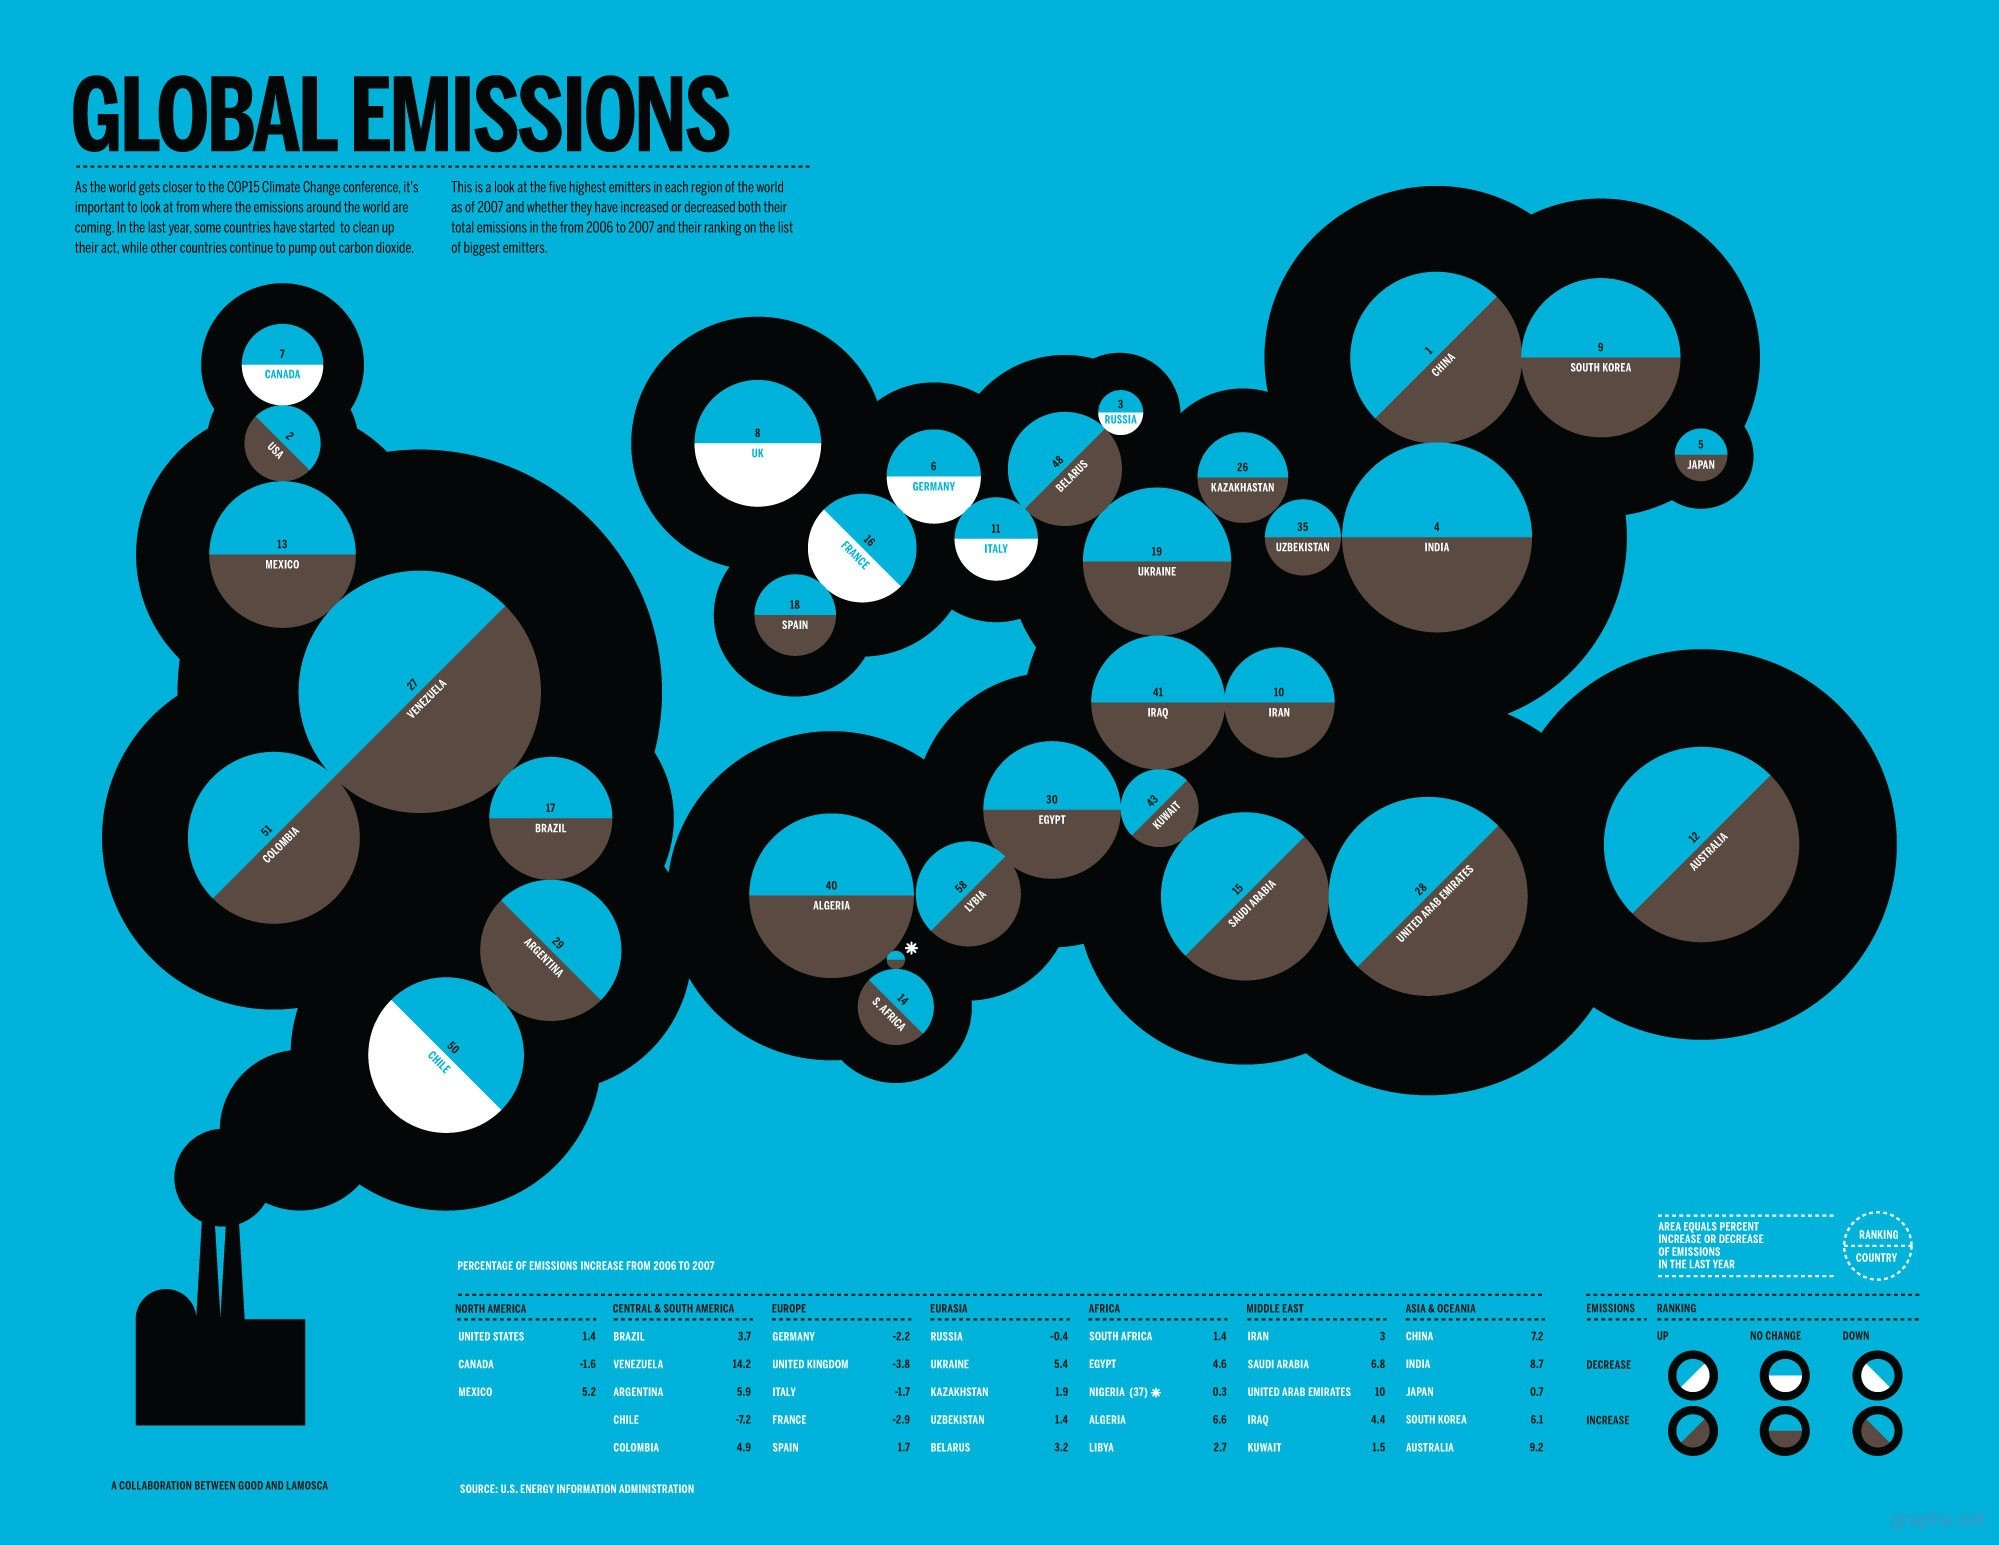 global co2 emissions by country